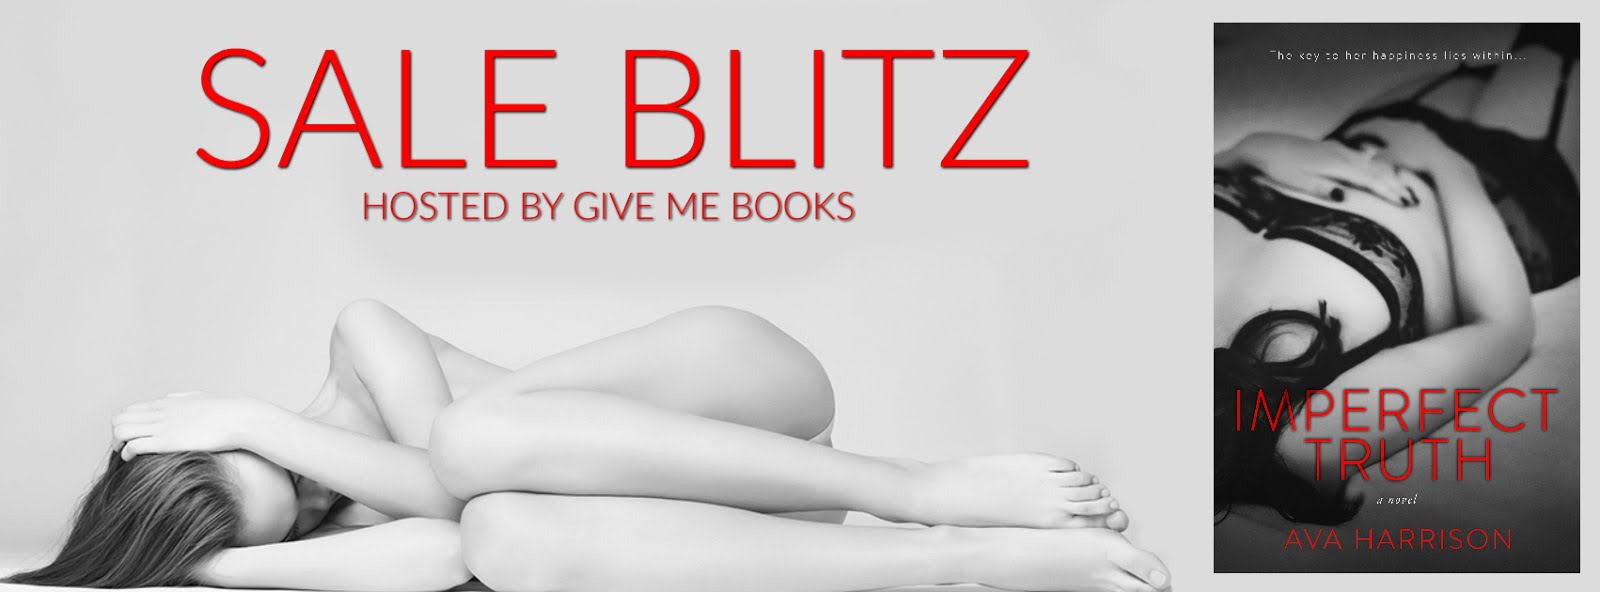 Sale  Blitz Imperfect Truth